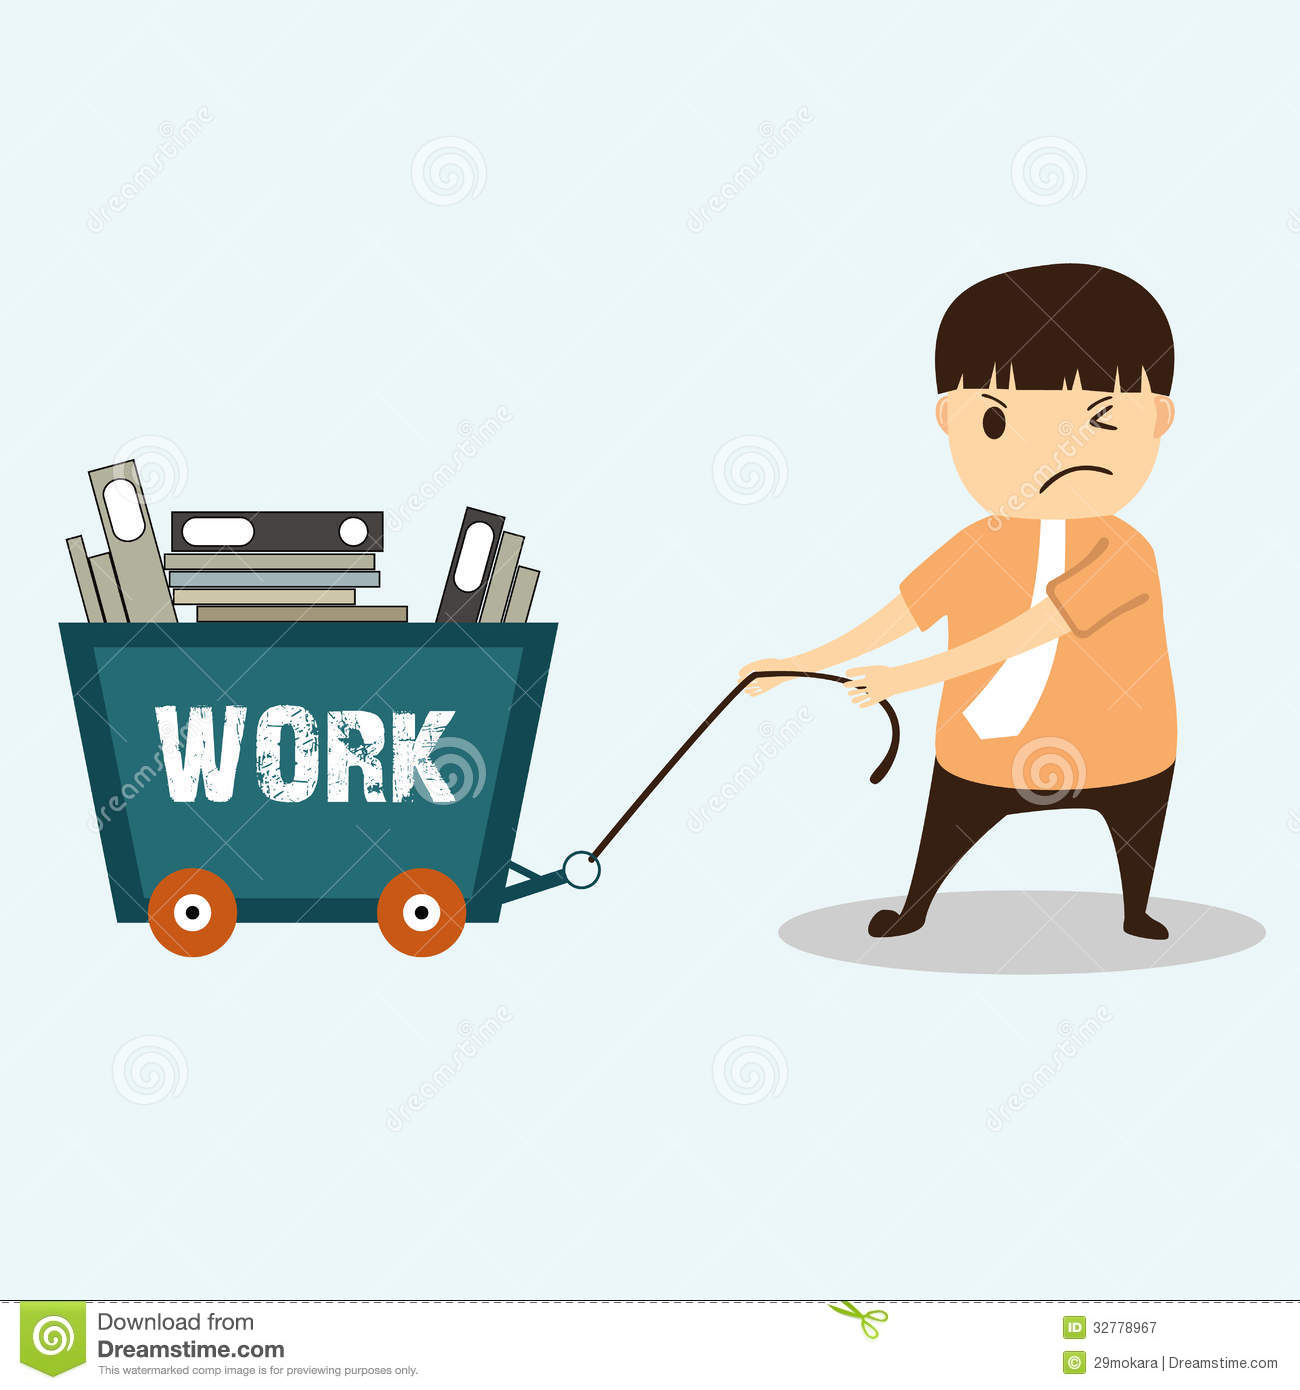 ... similar stock images of ` Businessman cartoon on work hard concept